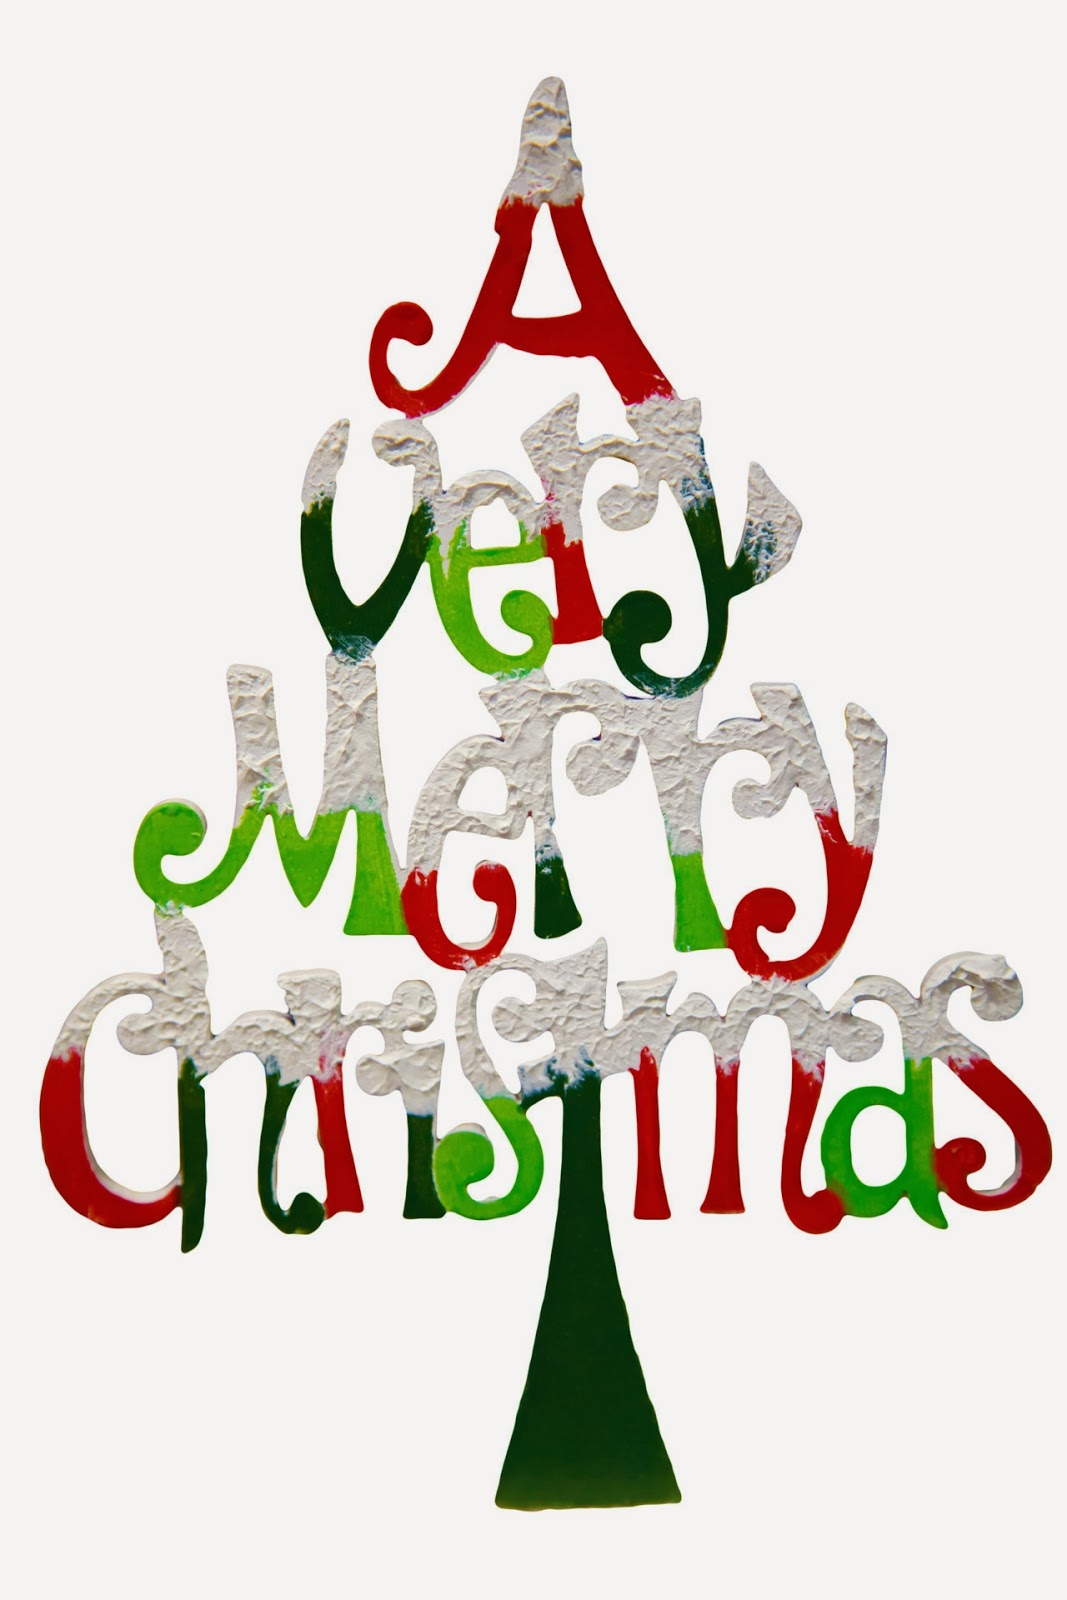 Religious Merry Christmas Clipart   Clipart library - Free Clipart. merry christmas (1).jpg